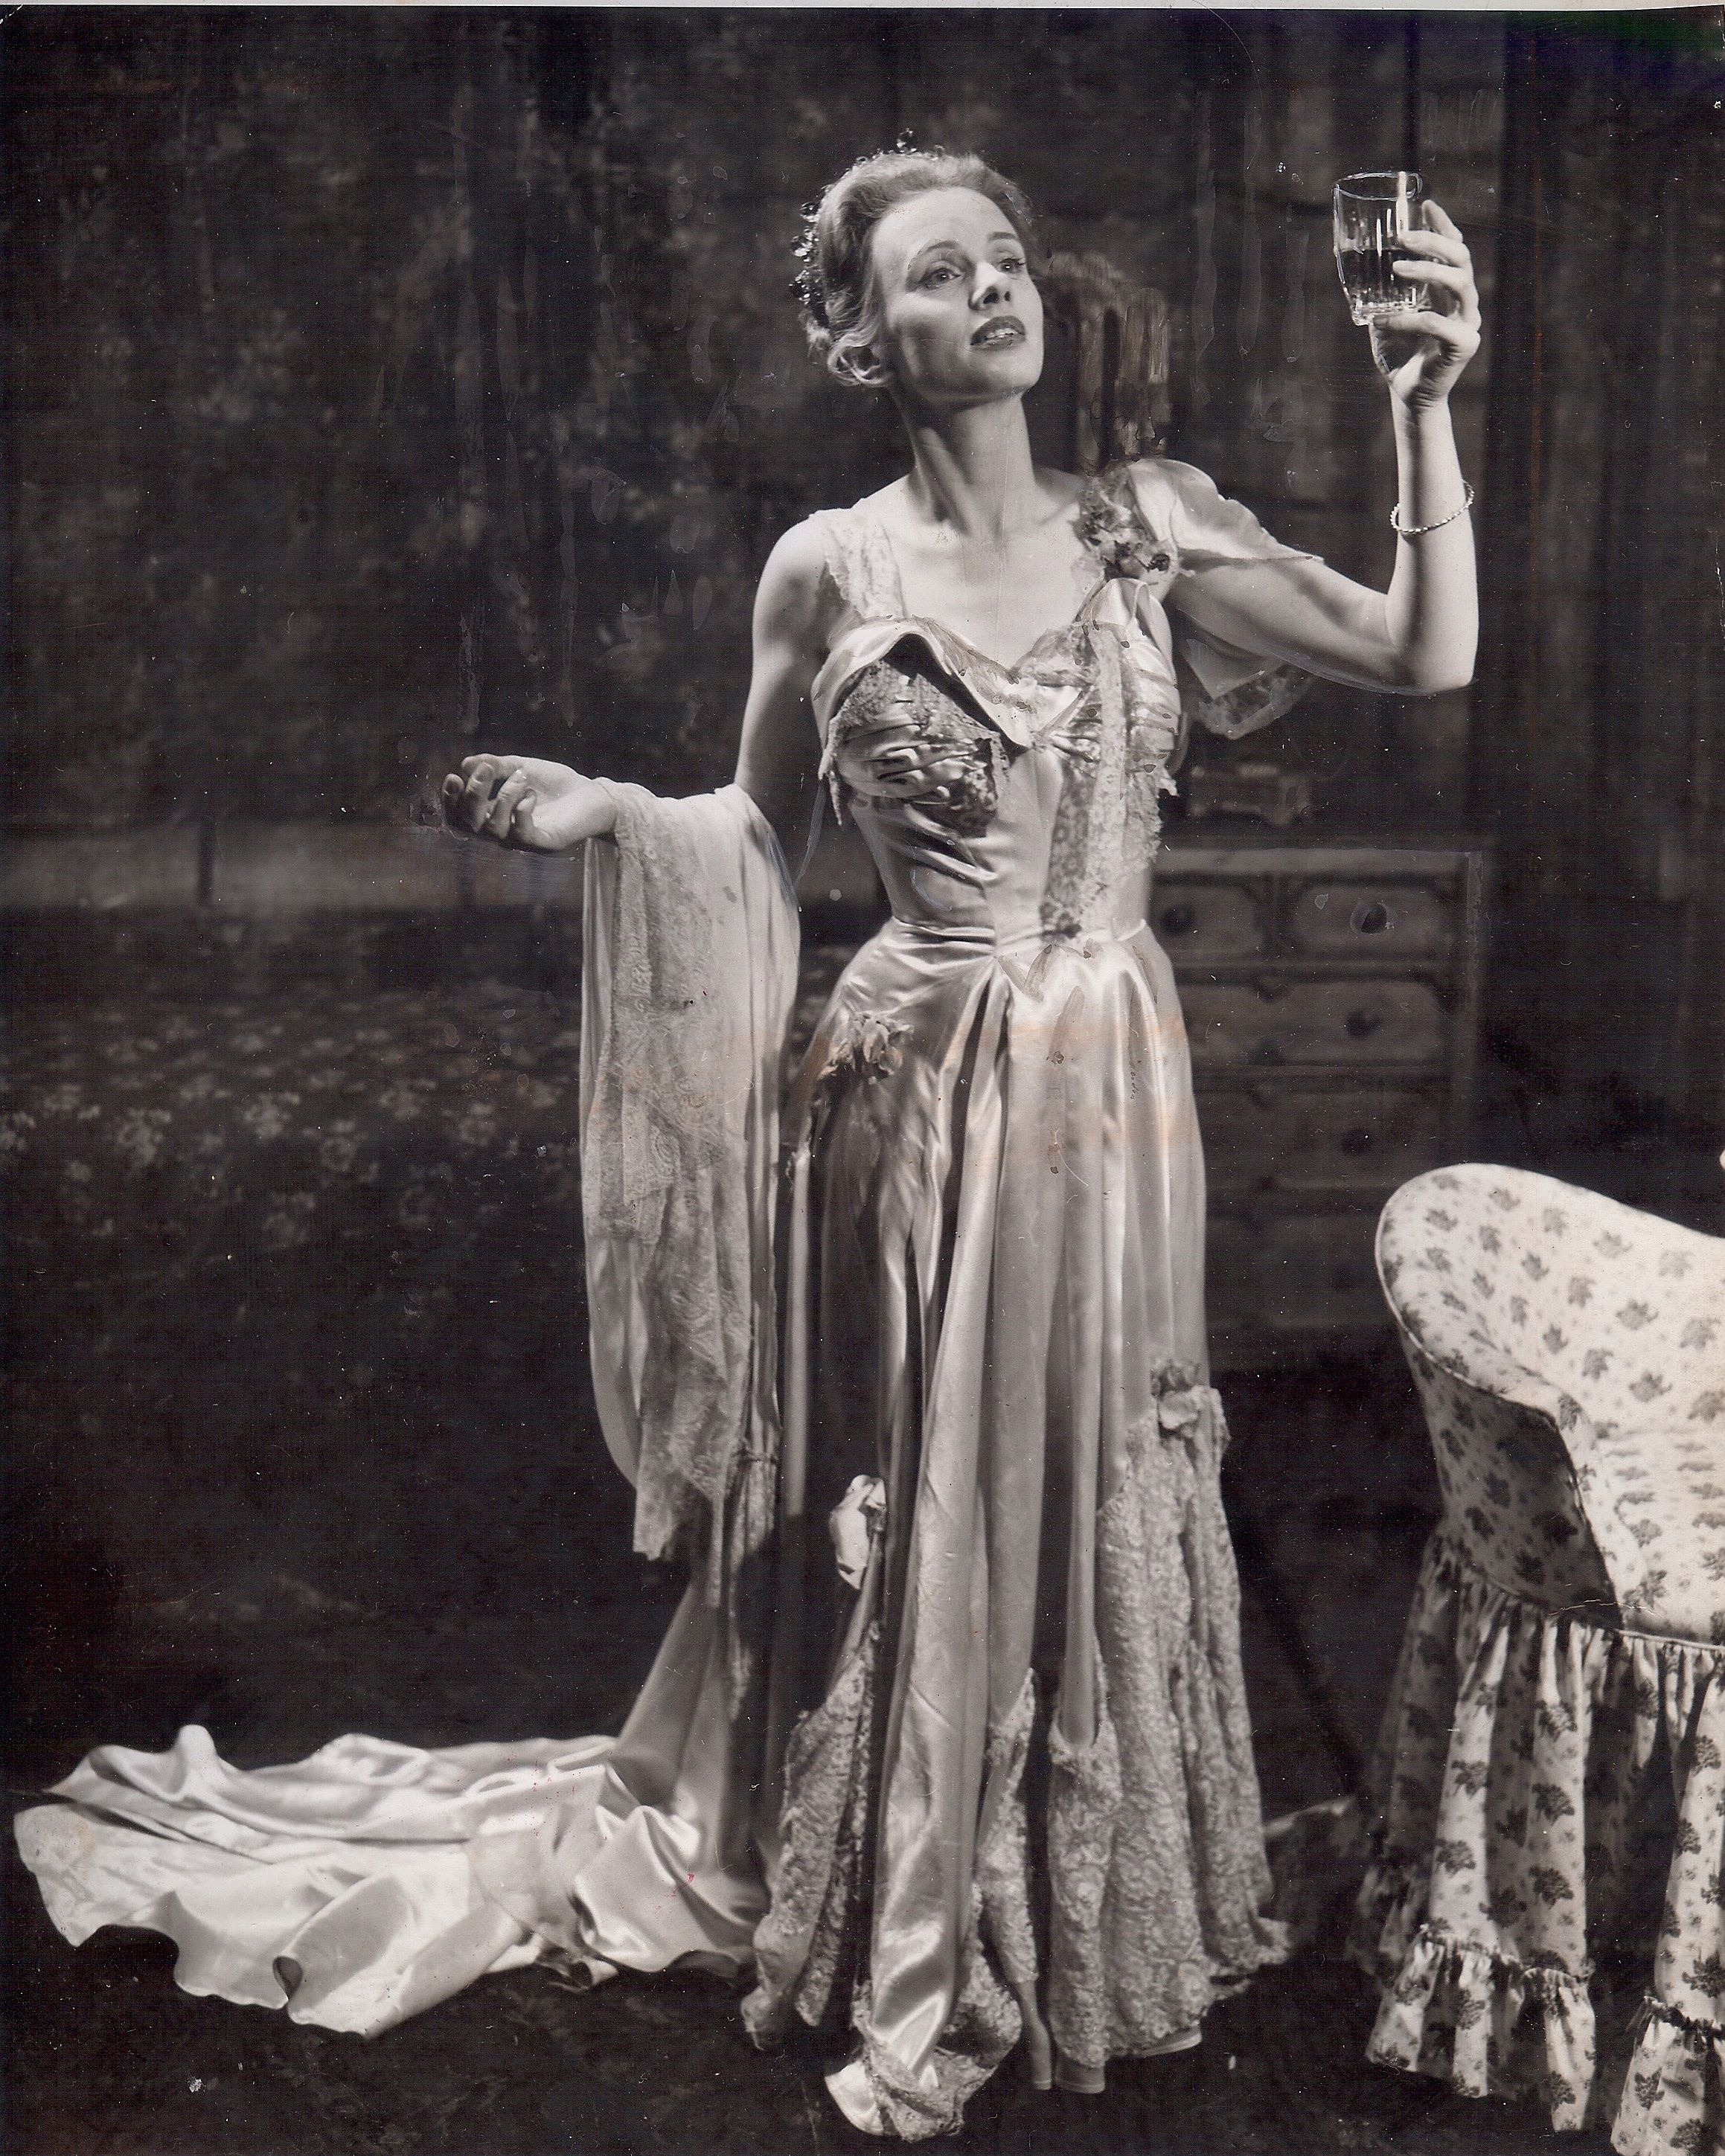 an analysis of the character of blanche dubois in tennesse williams a streetcar named desire In tennesse williams' play, a streetcar named desire the readers are introduced to a character named blanche dubois in the plot, blanche is stella's younger sister who has come to visit stella and her husband stanley in new orleans after their first meeting stanley develops a strong dislike for.